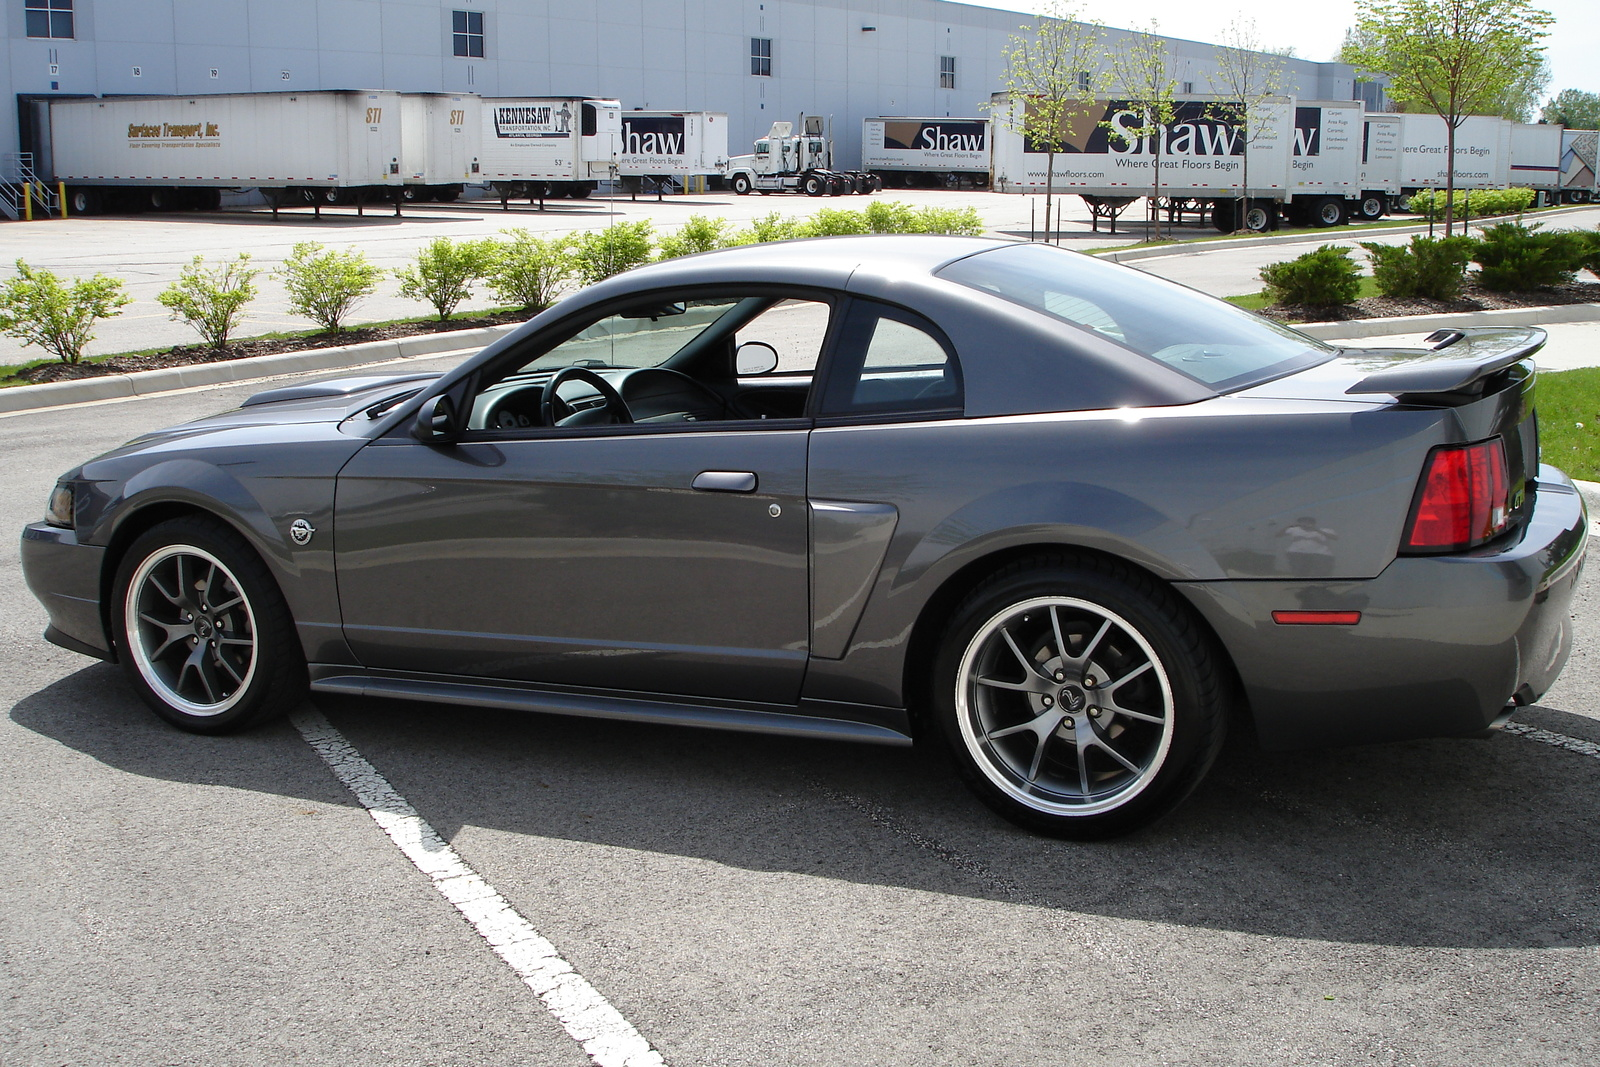 2004 Ford Mustang Image 18